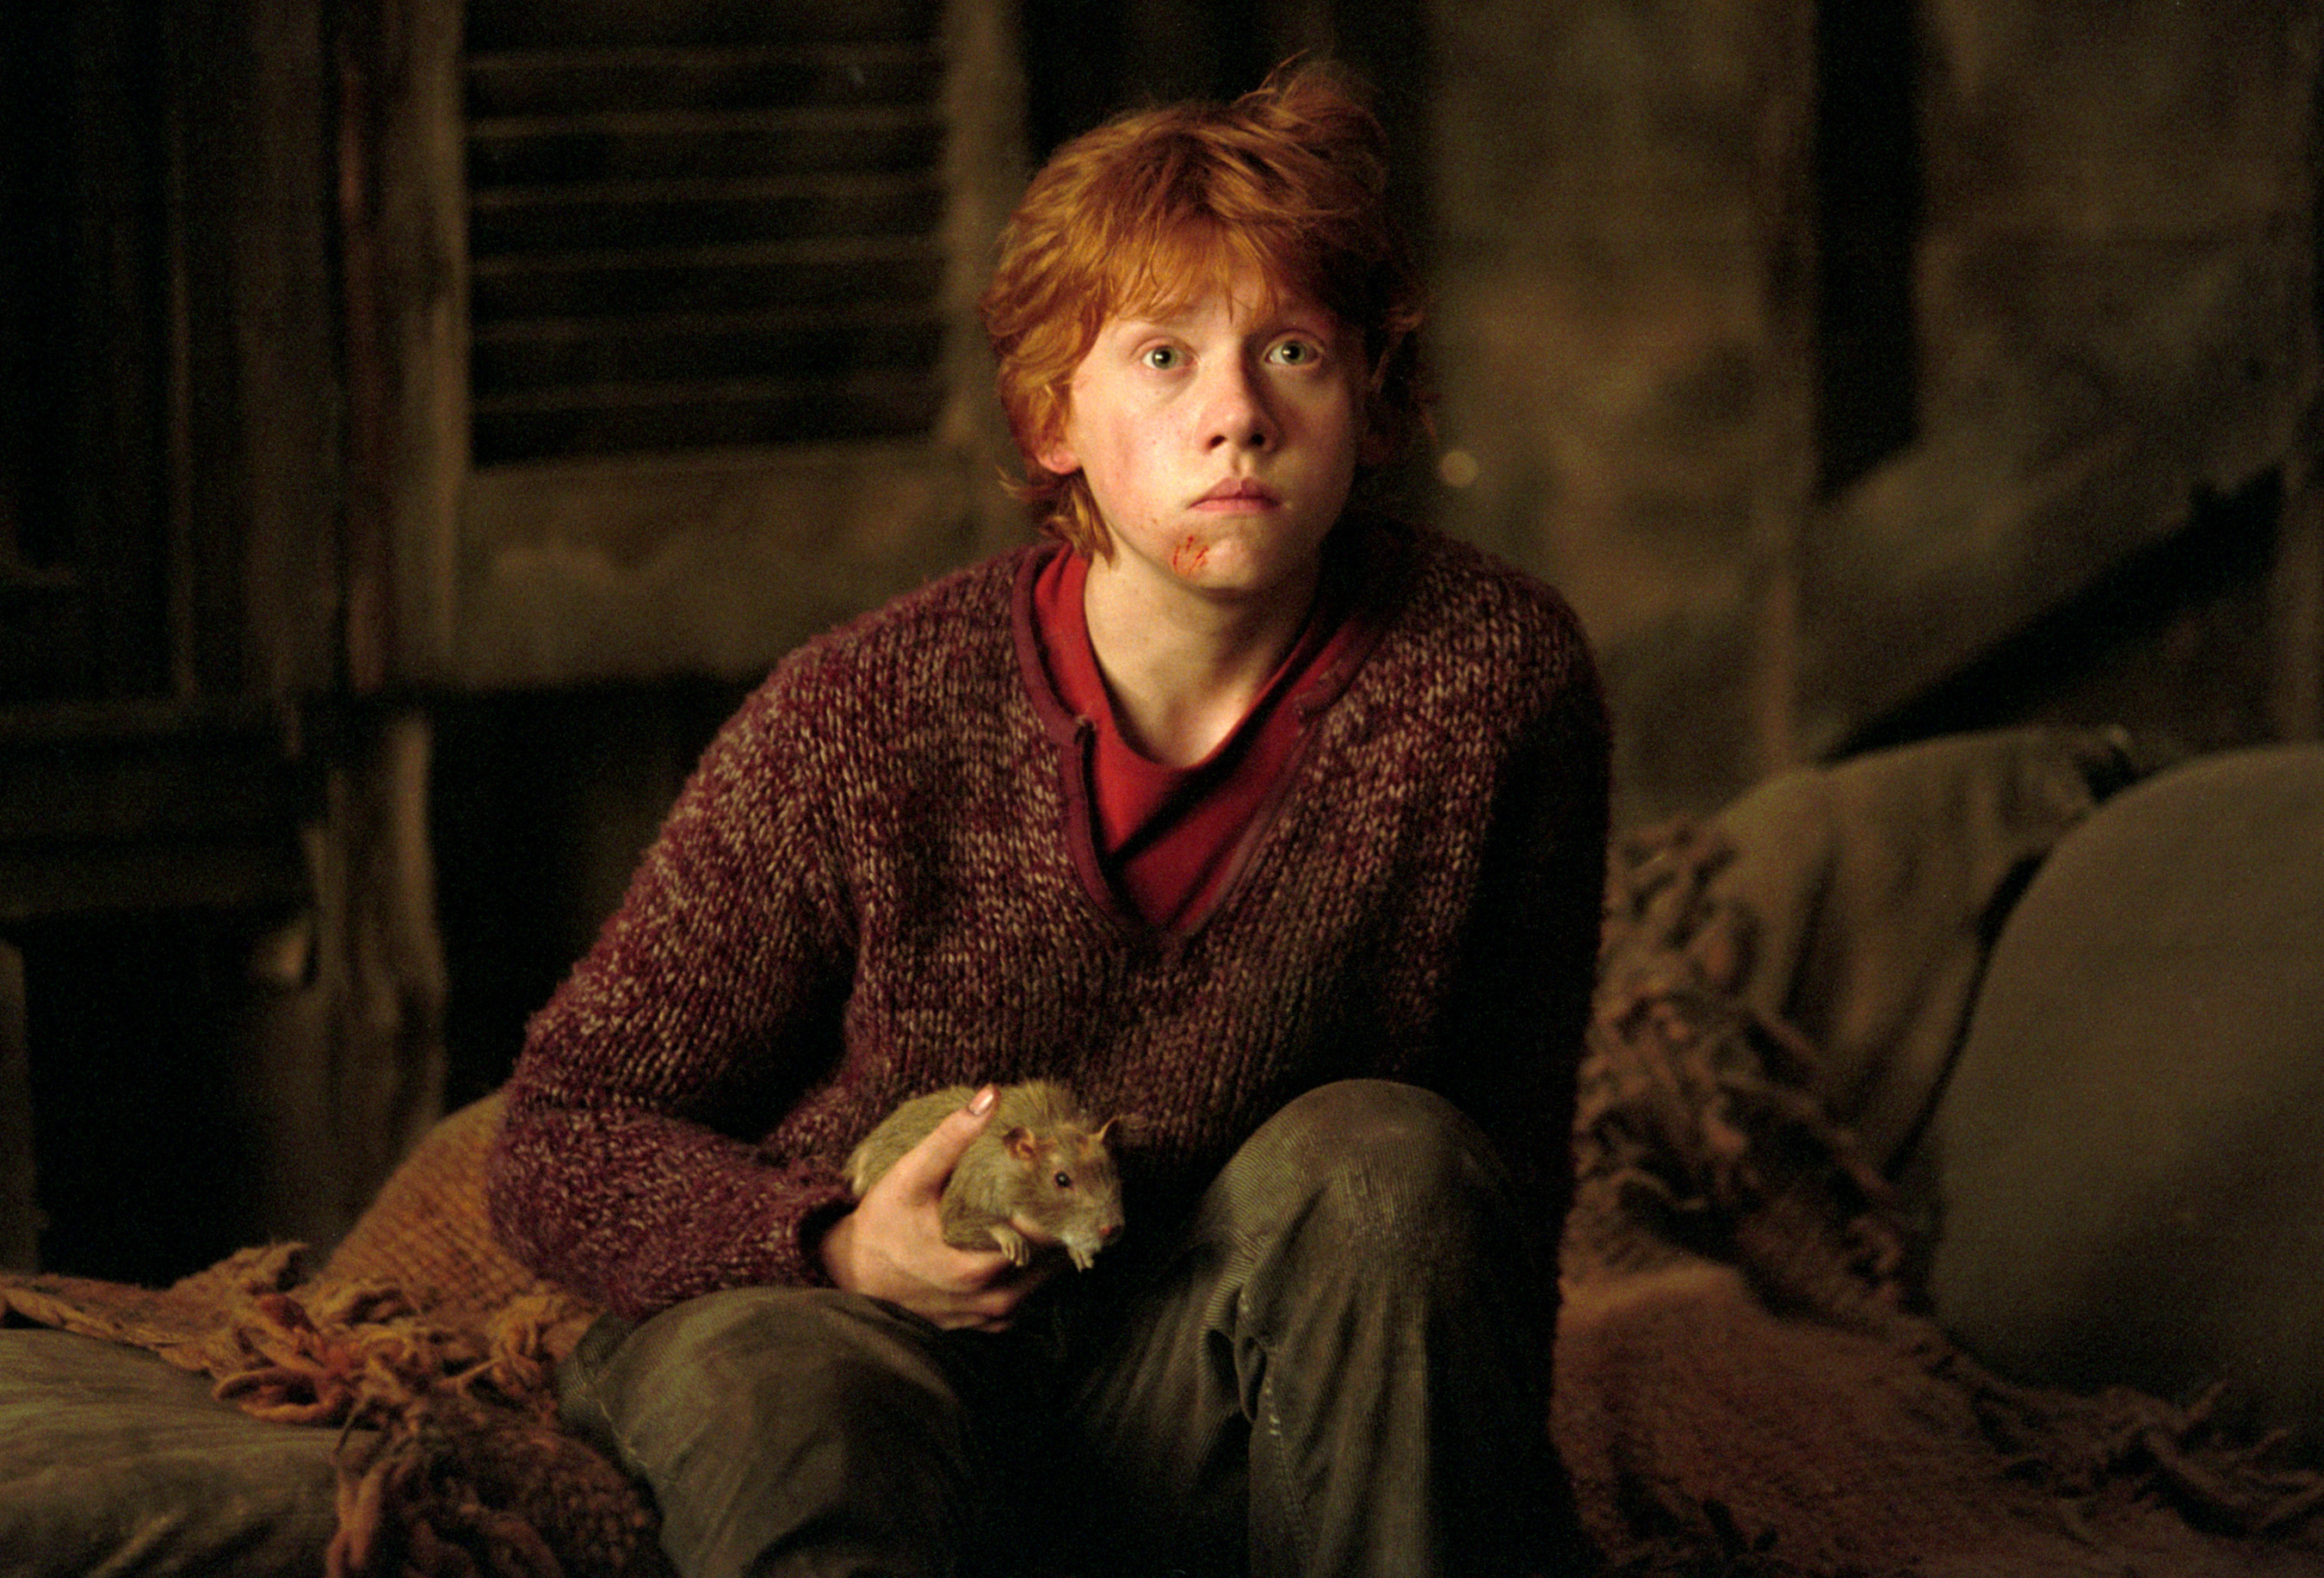 Ron in the 3rd movie